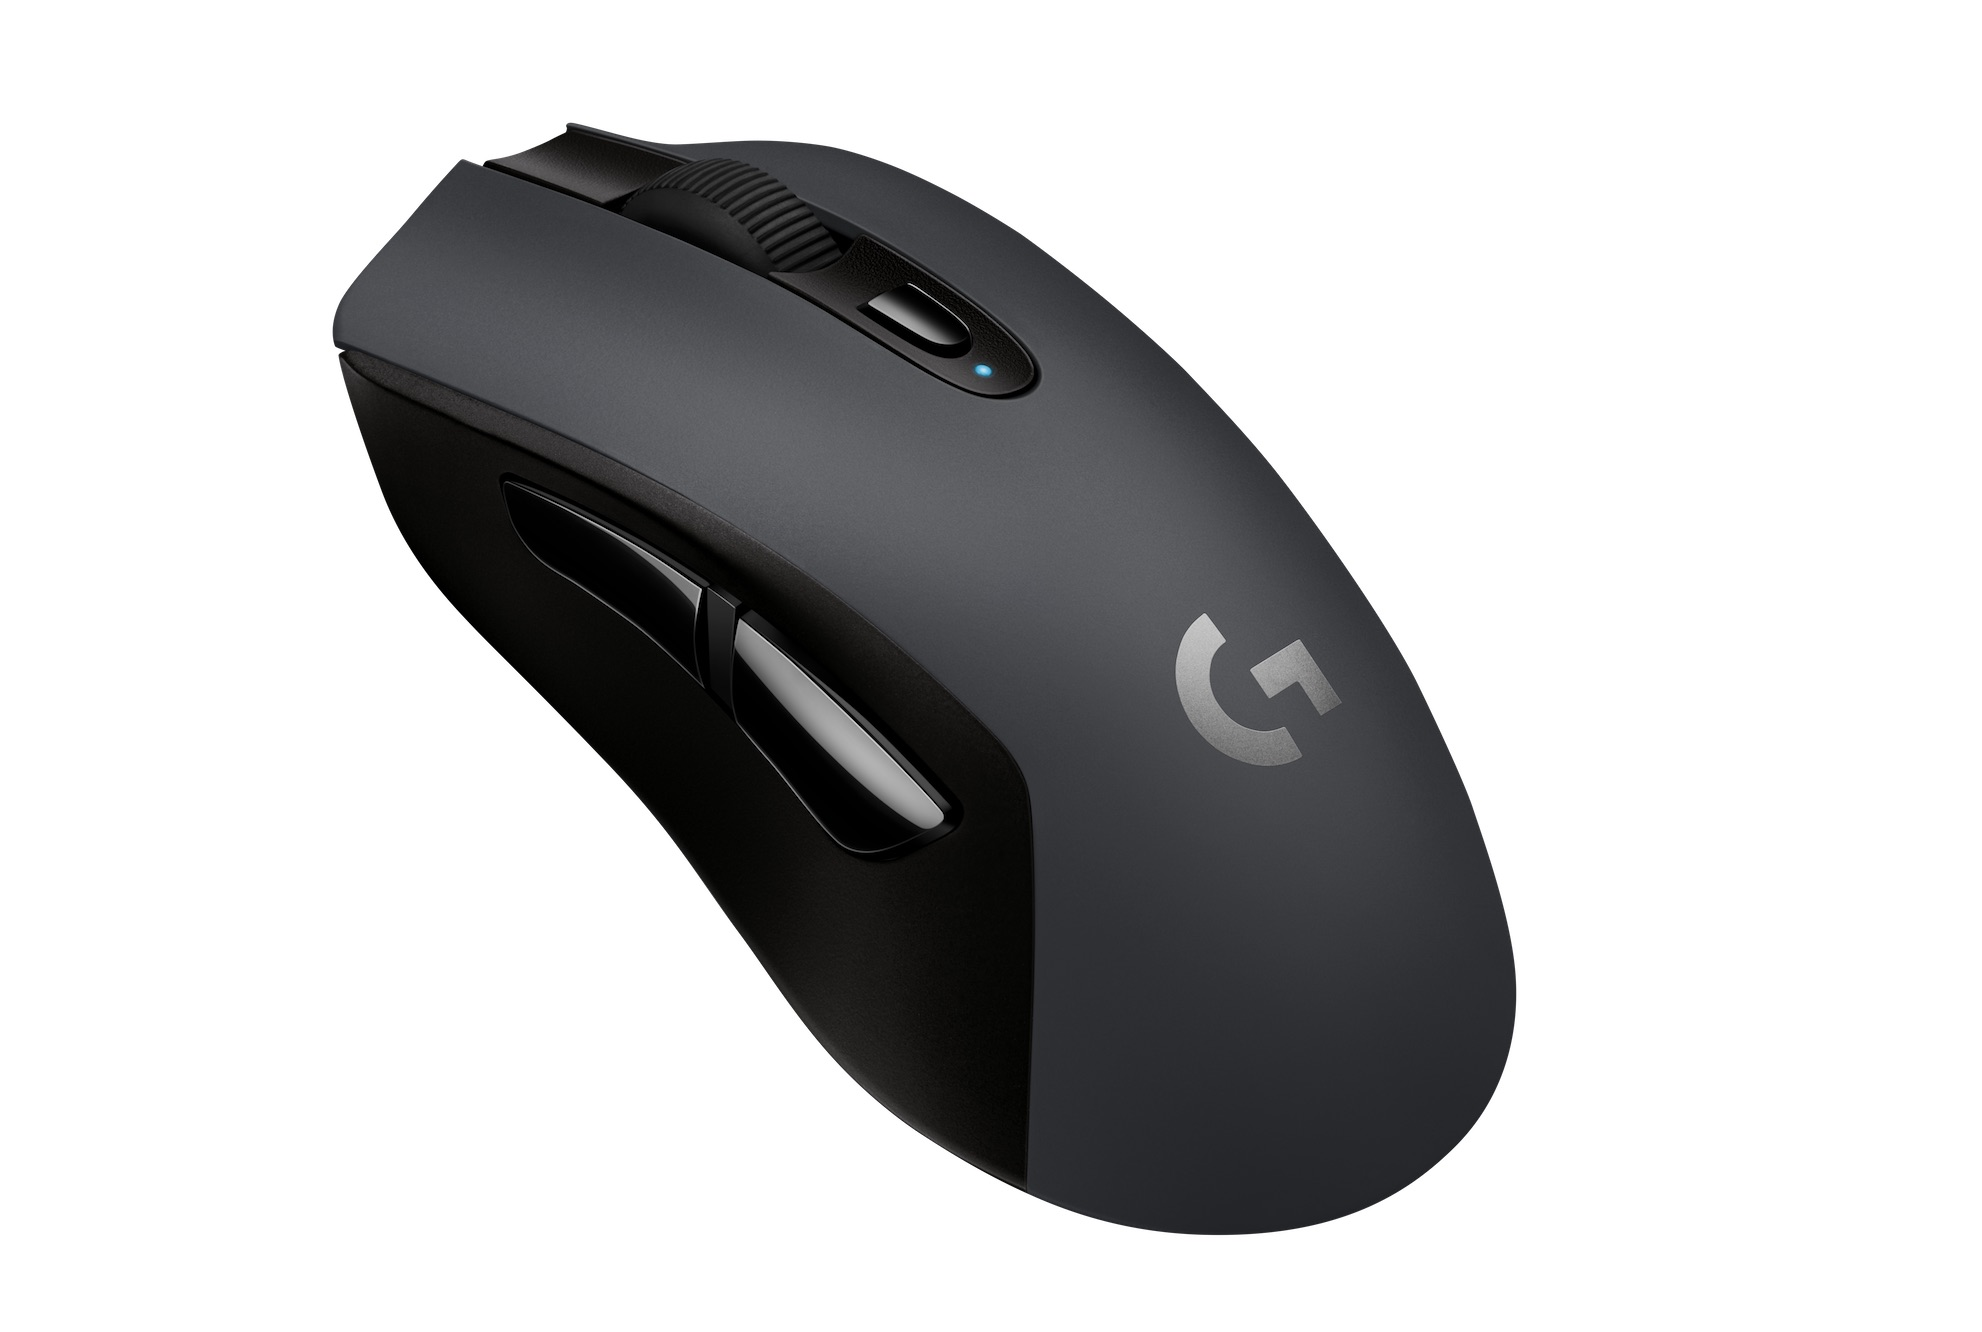 Logitech Adds New Peripherals to the G Series Line-Up